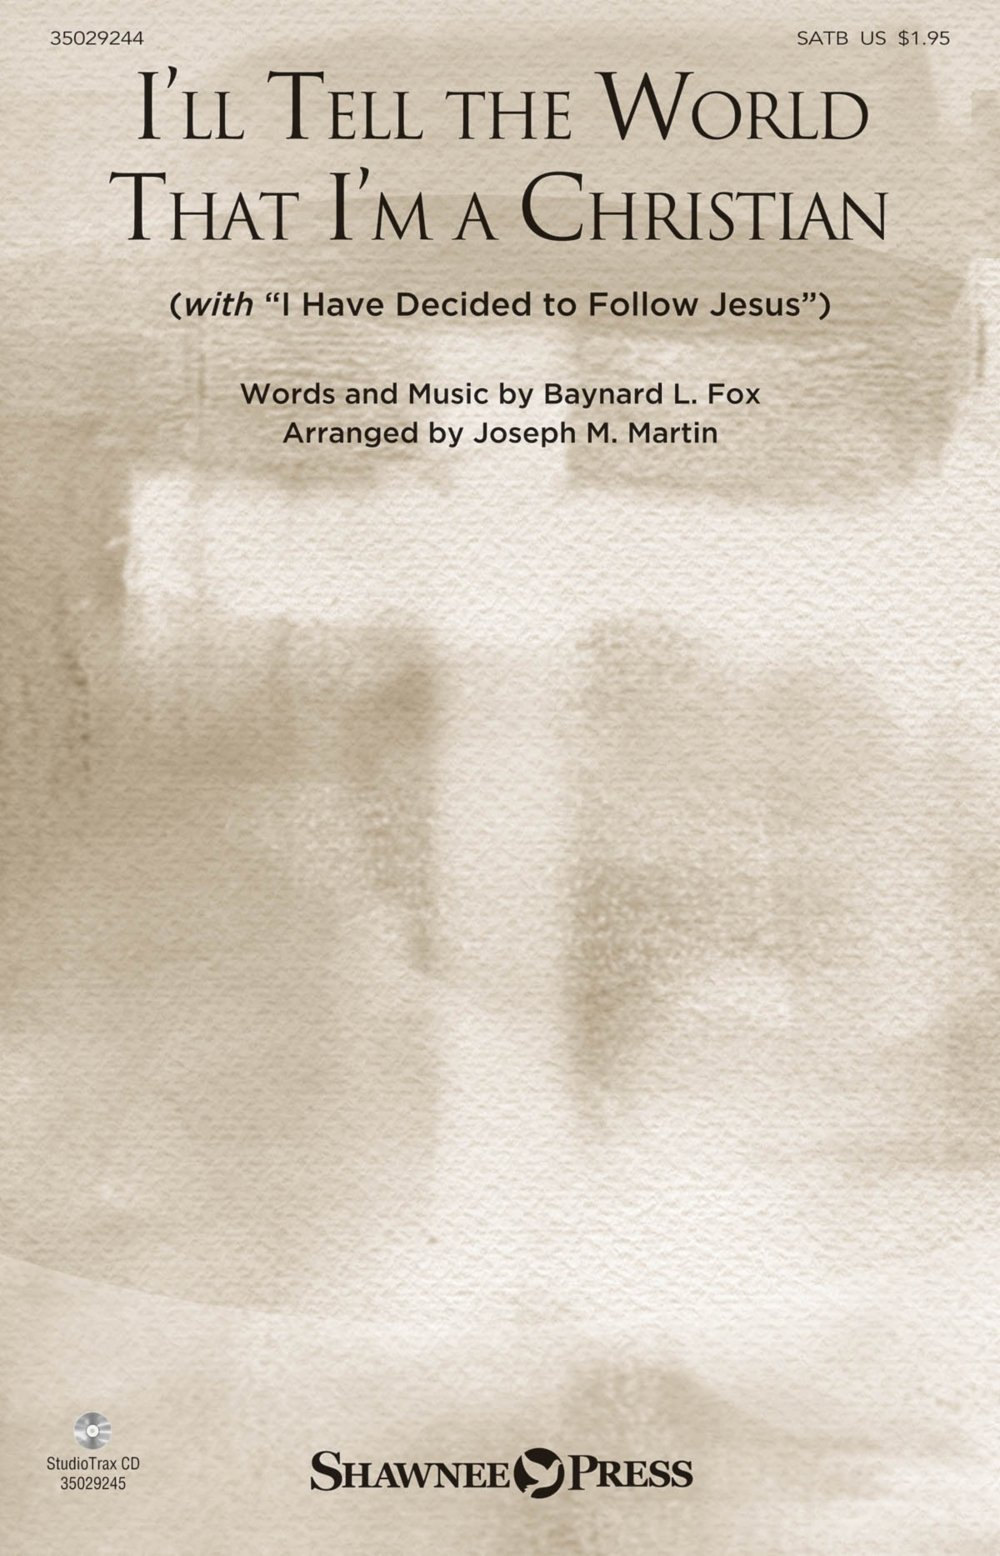 Download Shawnee Press I'll Tell the World That I'm a Christian (with I Have Decided to Follow Jesus) SATB by Joseph Martin pdf